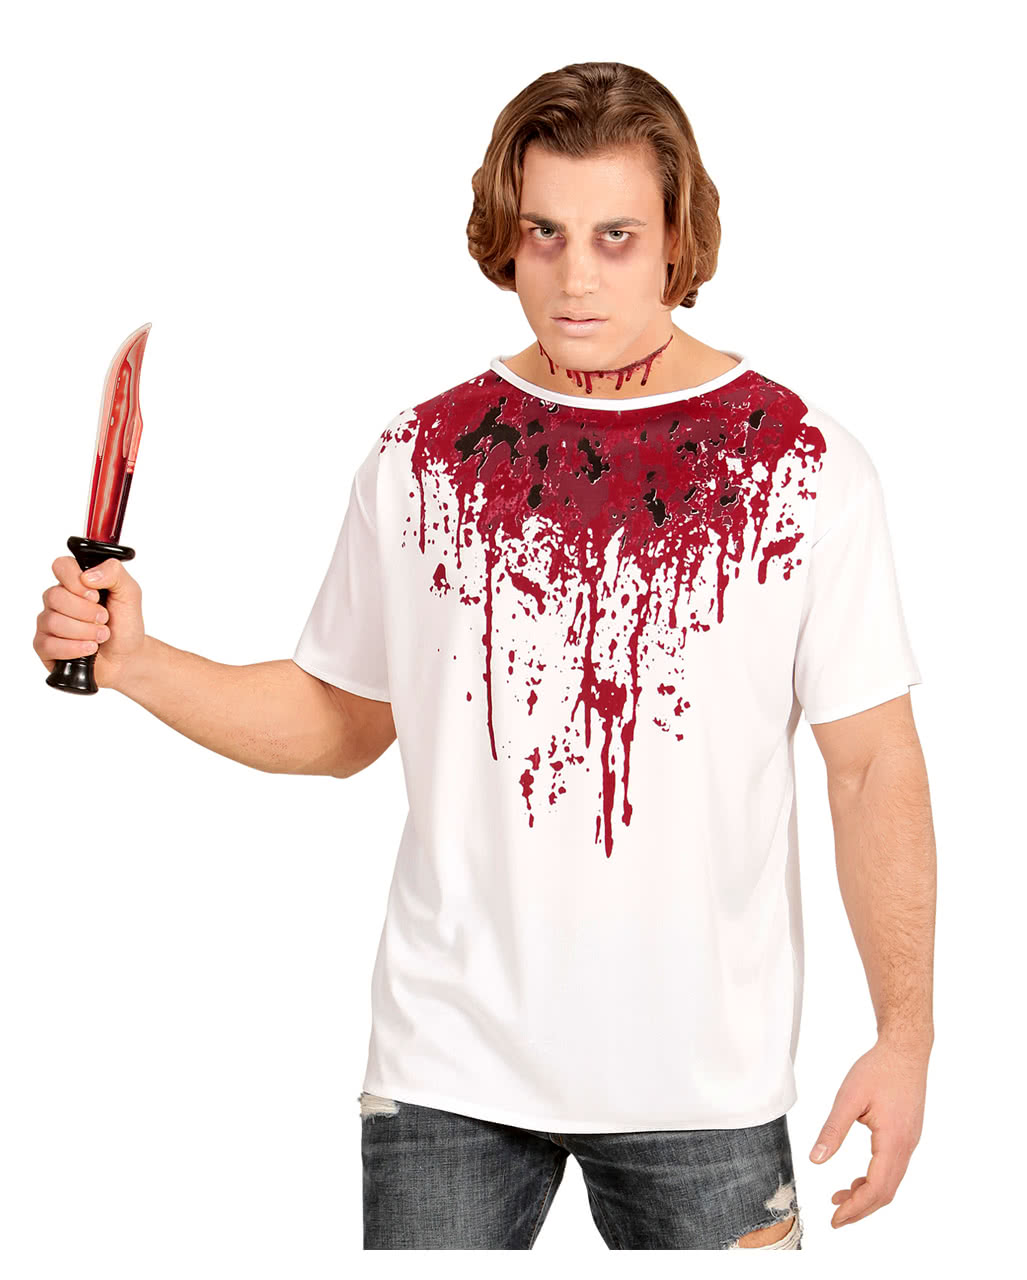 blood smeared t shirt for halloween horror parties horror. Black Bedroom Furniture Sets. Home Design Ideas